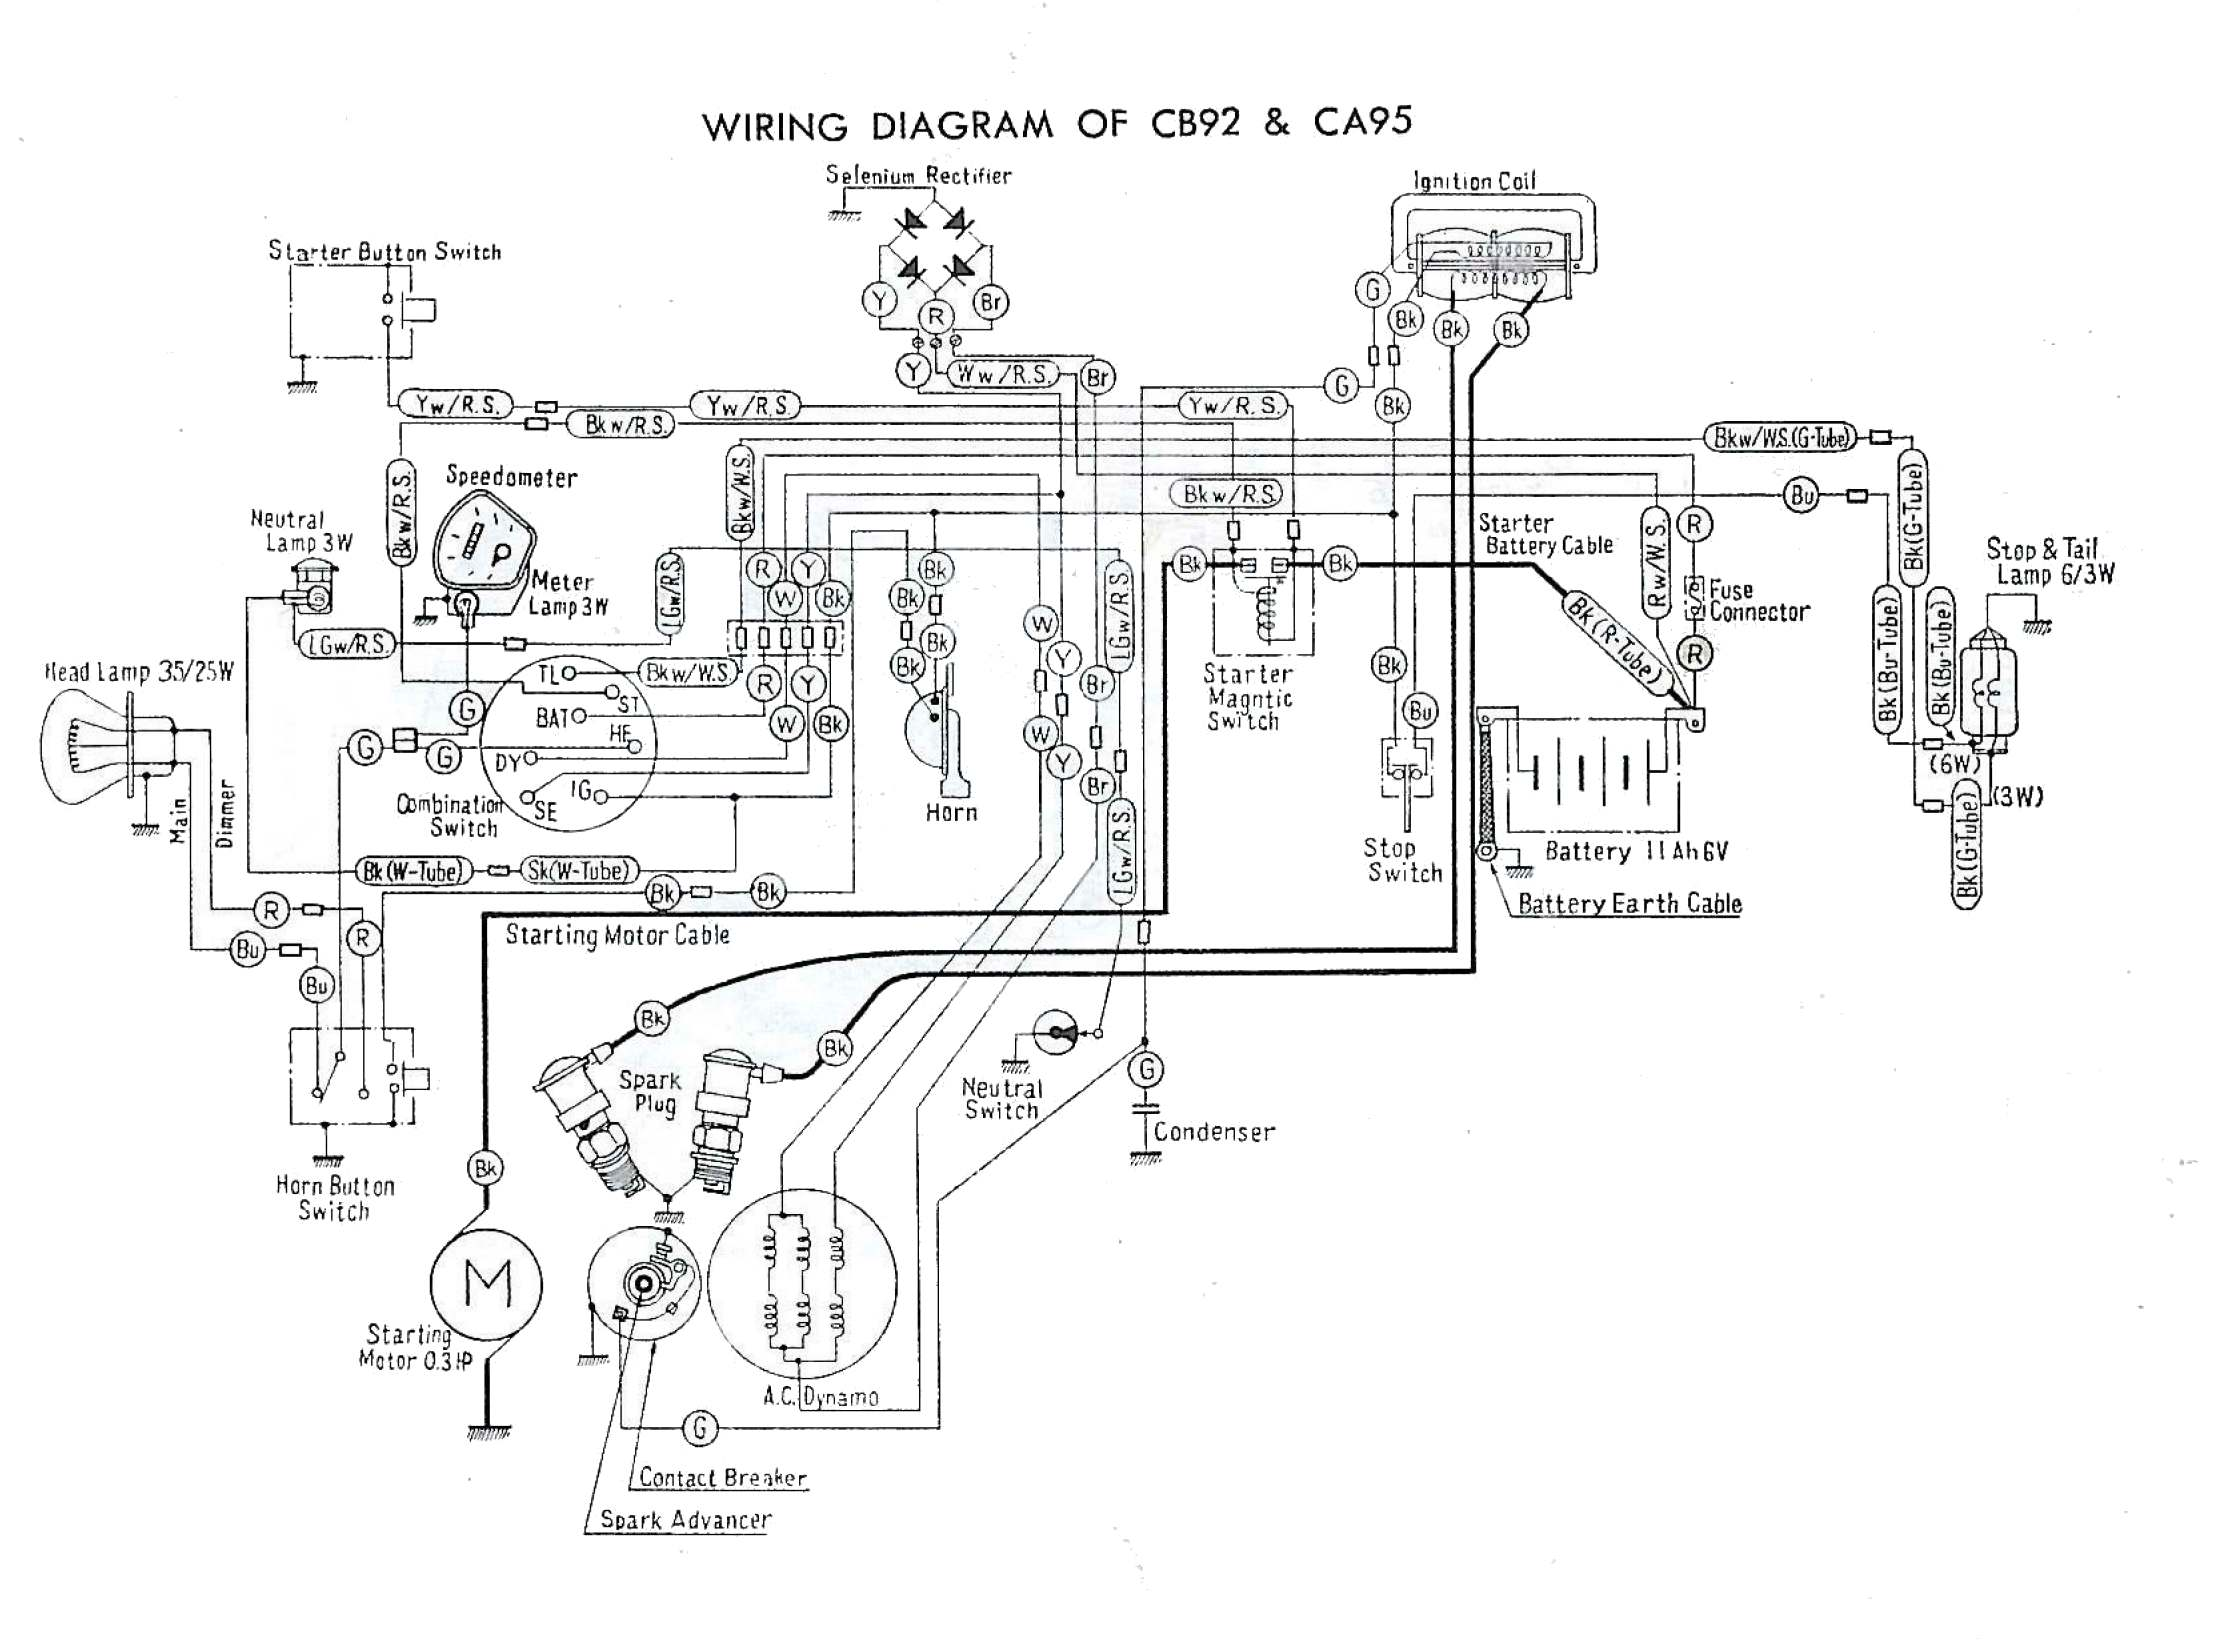 1998 honda accord ignition wiring diagram jeep jk cb900f 2001